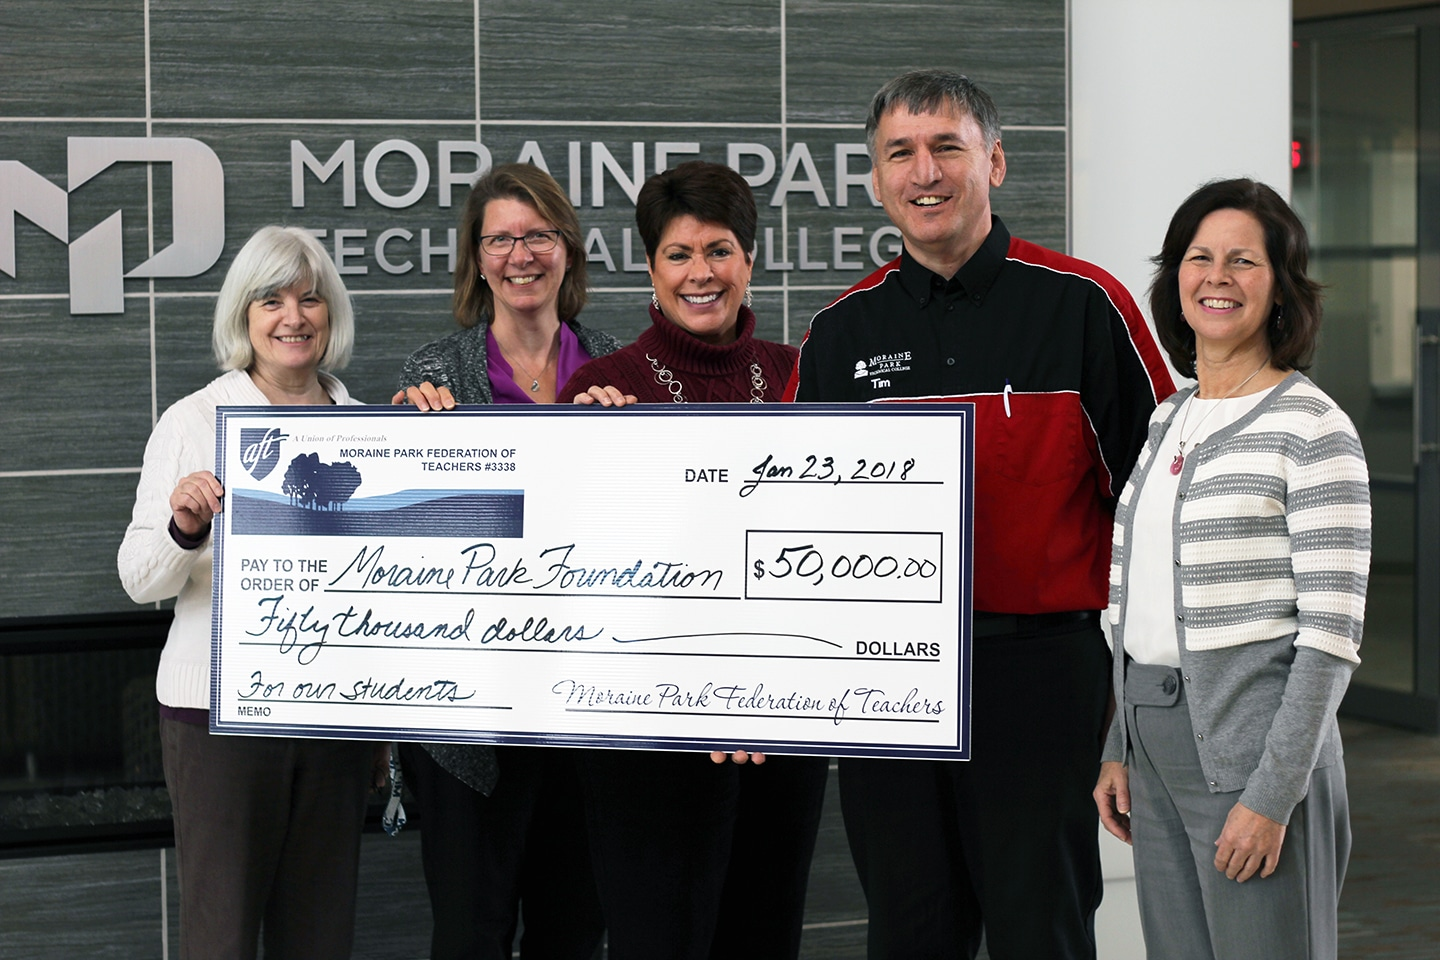 Picture of Moraine Park Foundation Director accepting $50,000 check from Moraine Park Federation of Teachers.